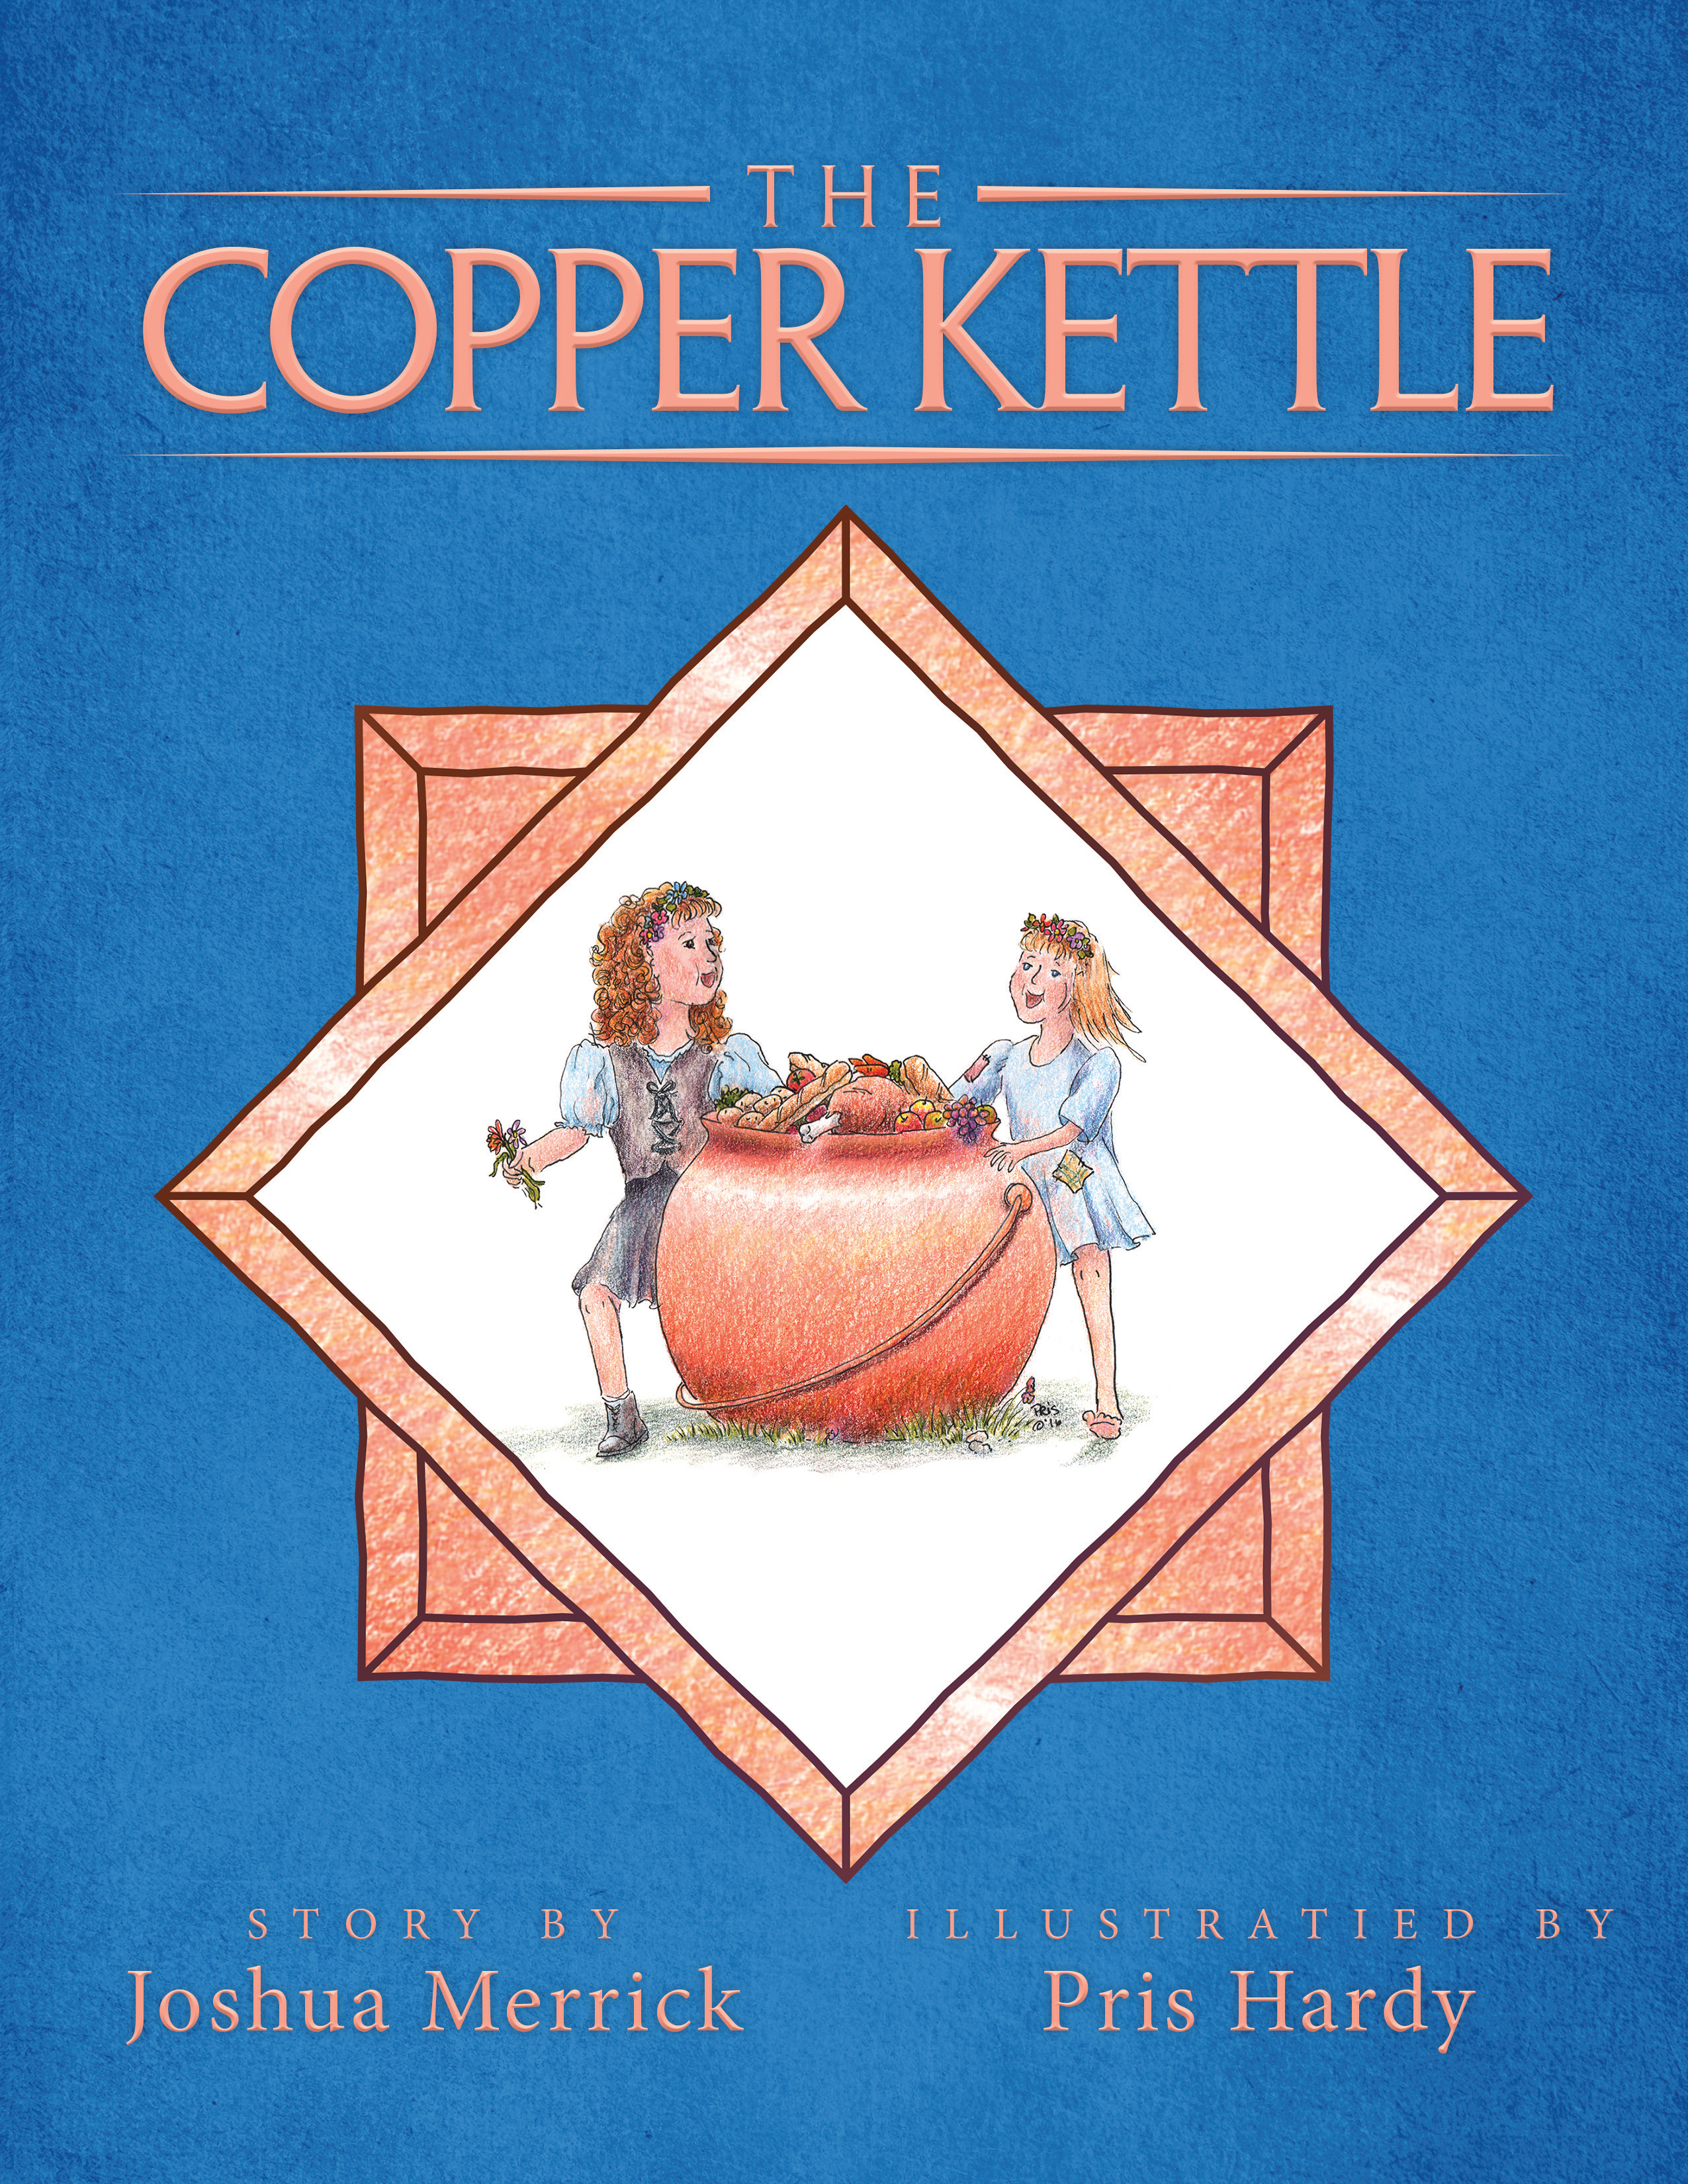 The Copper Kettle by Joshua Merrick on Amazon